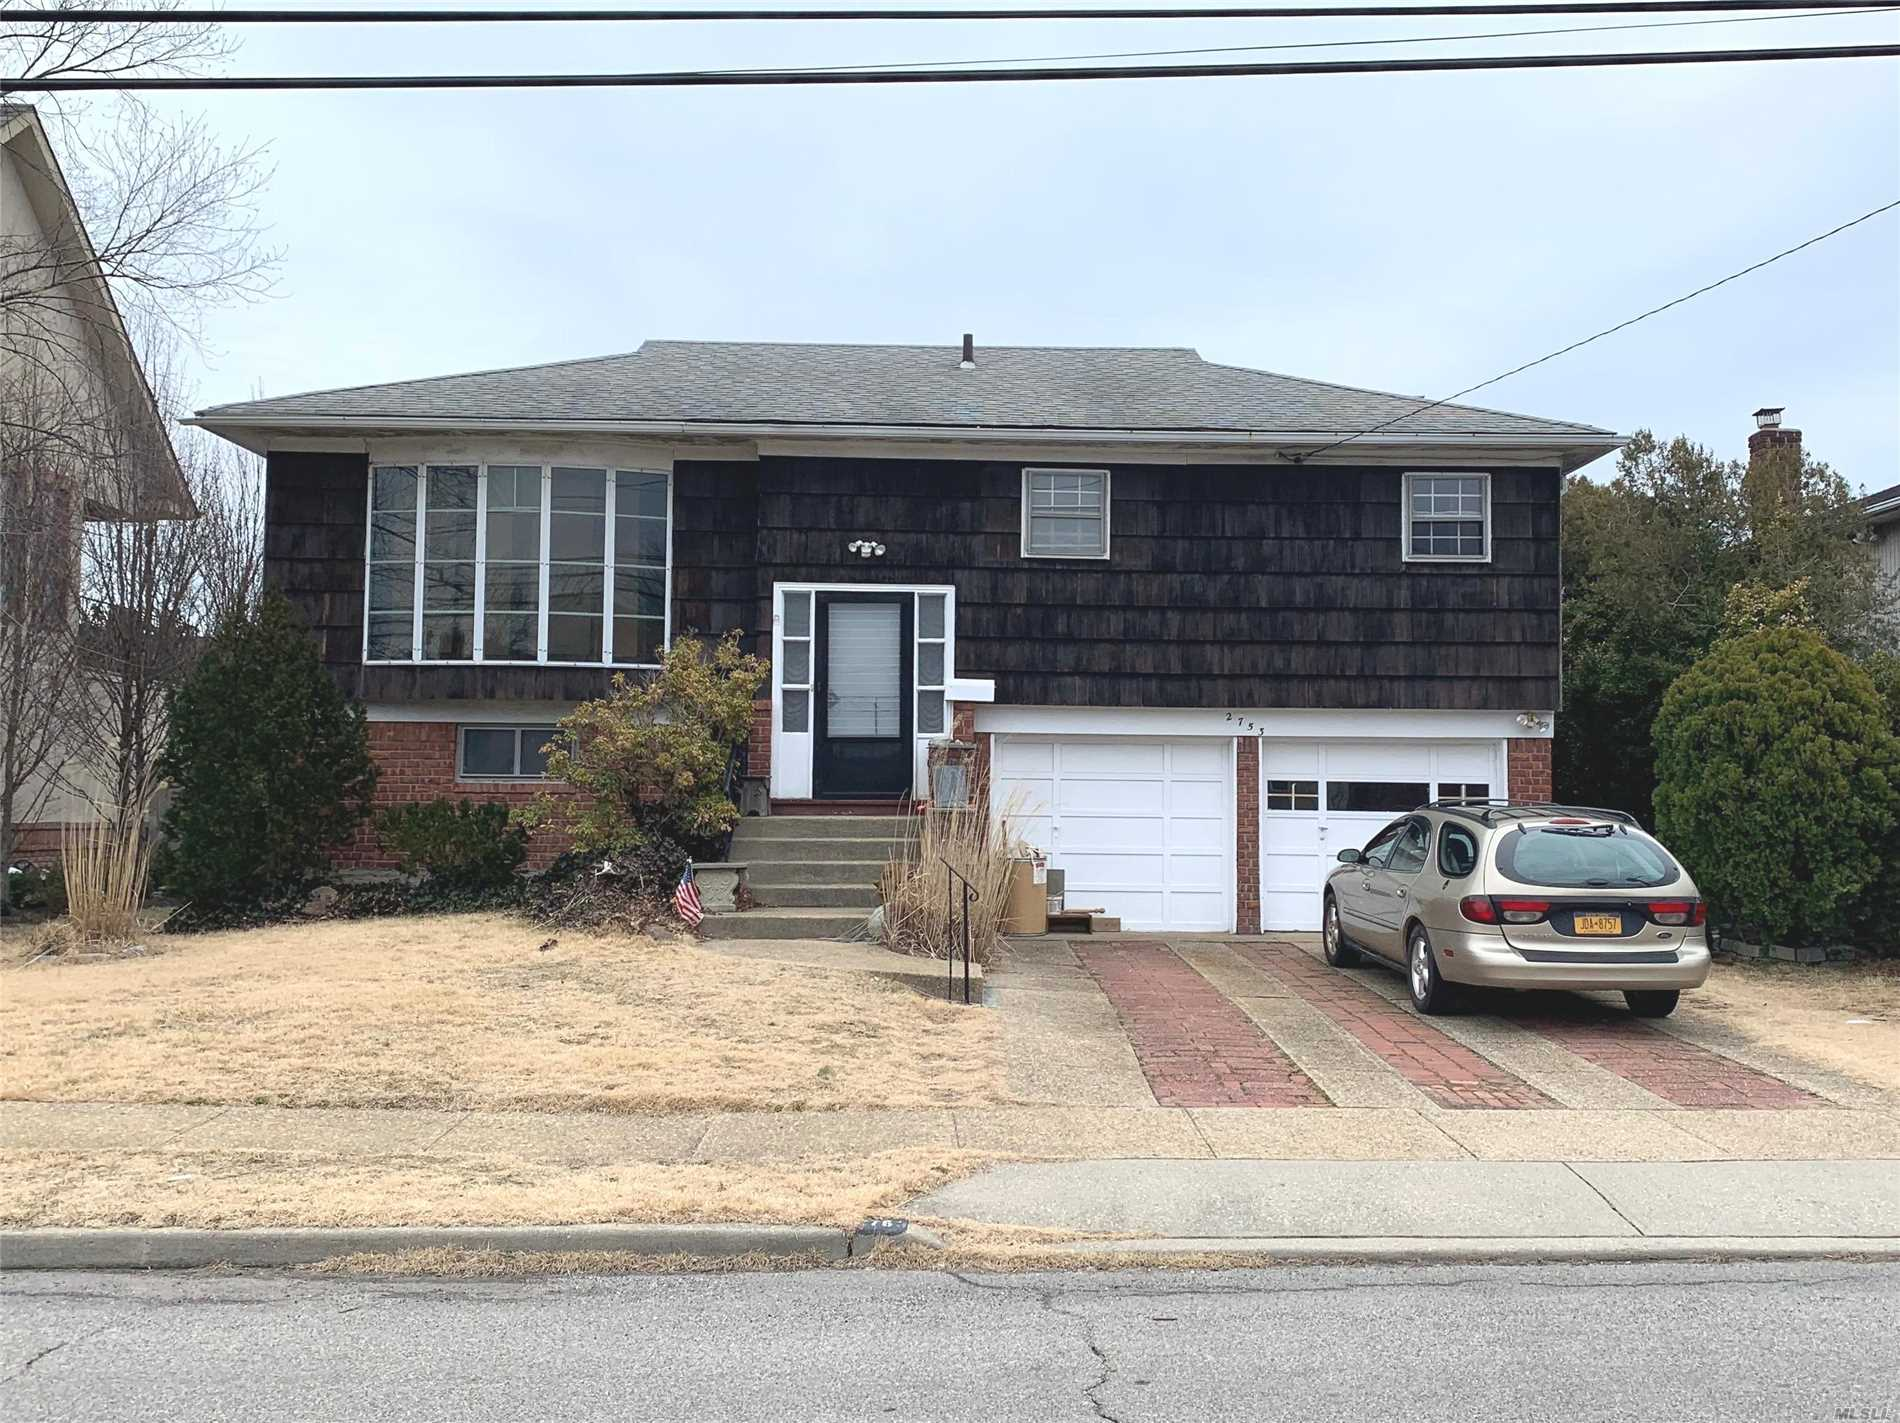 Large 3 bdrm 2 bath hi-ranch w/ enormous 2.5-car gar in need of some TLC. Handyman &/or end-user special... endless potential! Truly an Unbeatable block & location w/ panoramic water-views of the naturally-wide-as-a-lake Bellmore Creek from home's sunny back deck & bkyard! Home sits on sprawling property in the most private/quiet & desirable of locations within the 1st-class East Bay Neighborhood of S.Bellmore. Renovate or build brand new at this unique prime piece of serenity down by the bay!